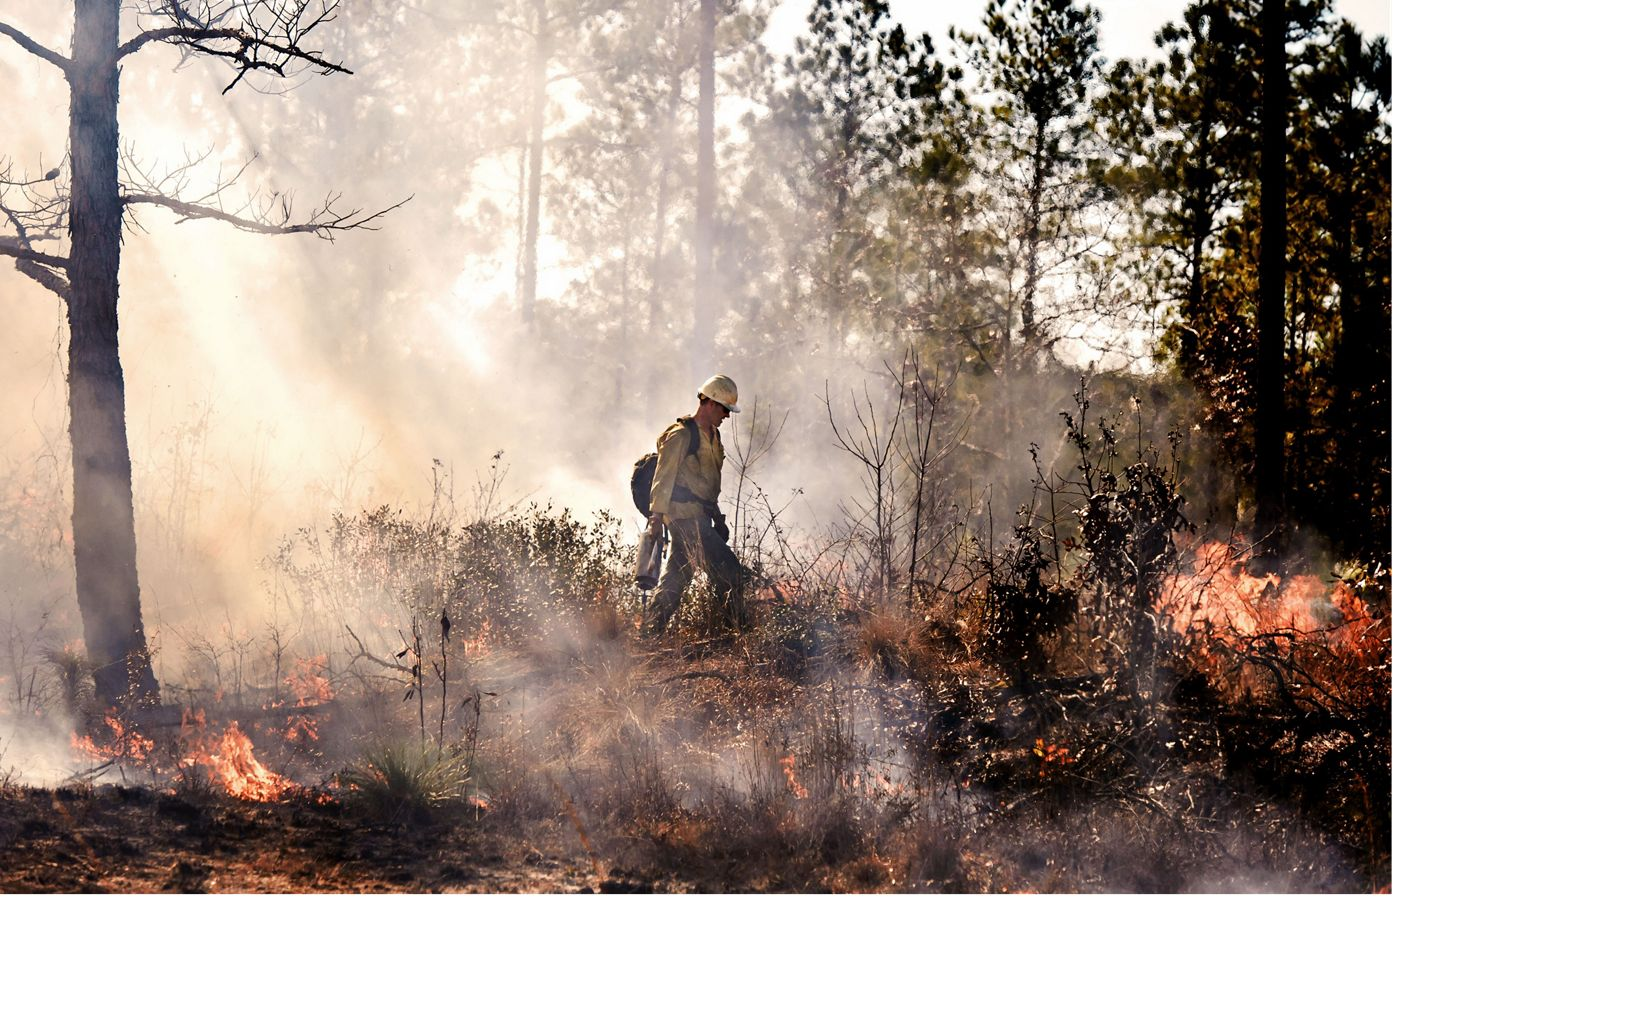 A crew member guiding the burn unit's interior flames by drip torch.